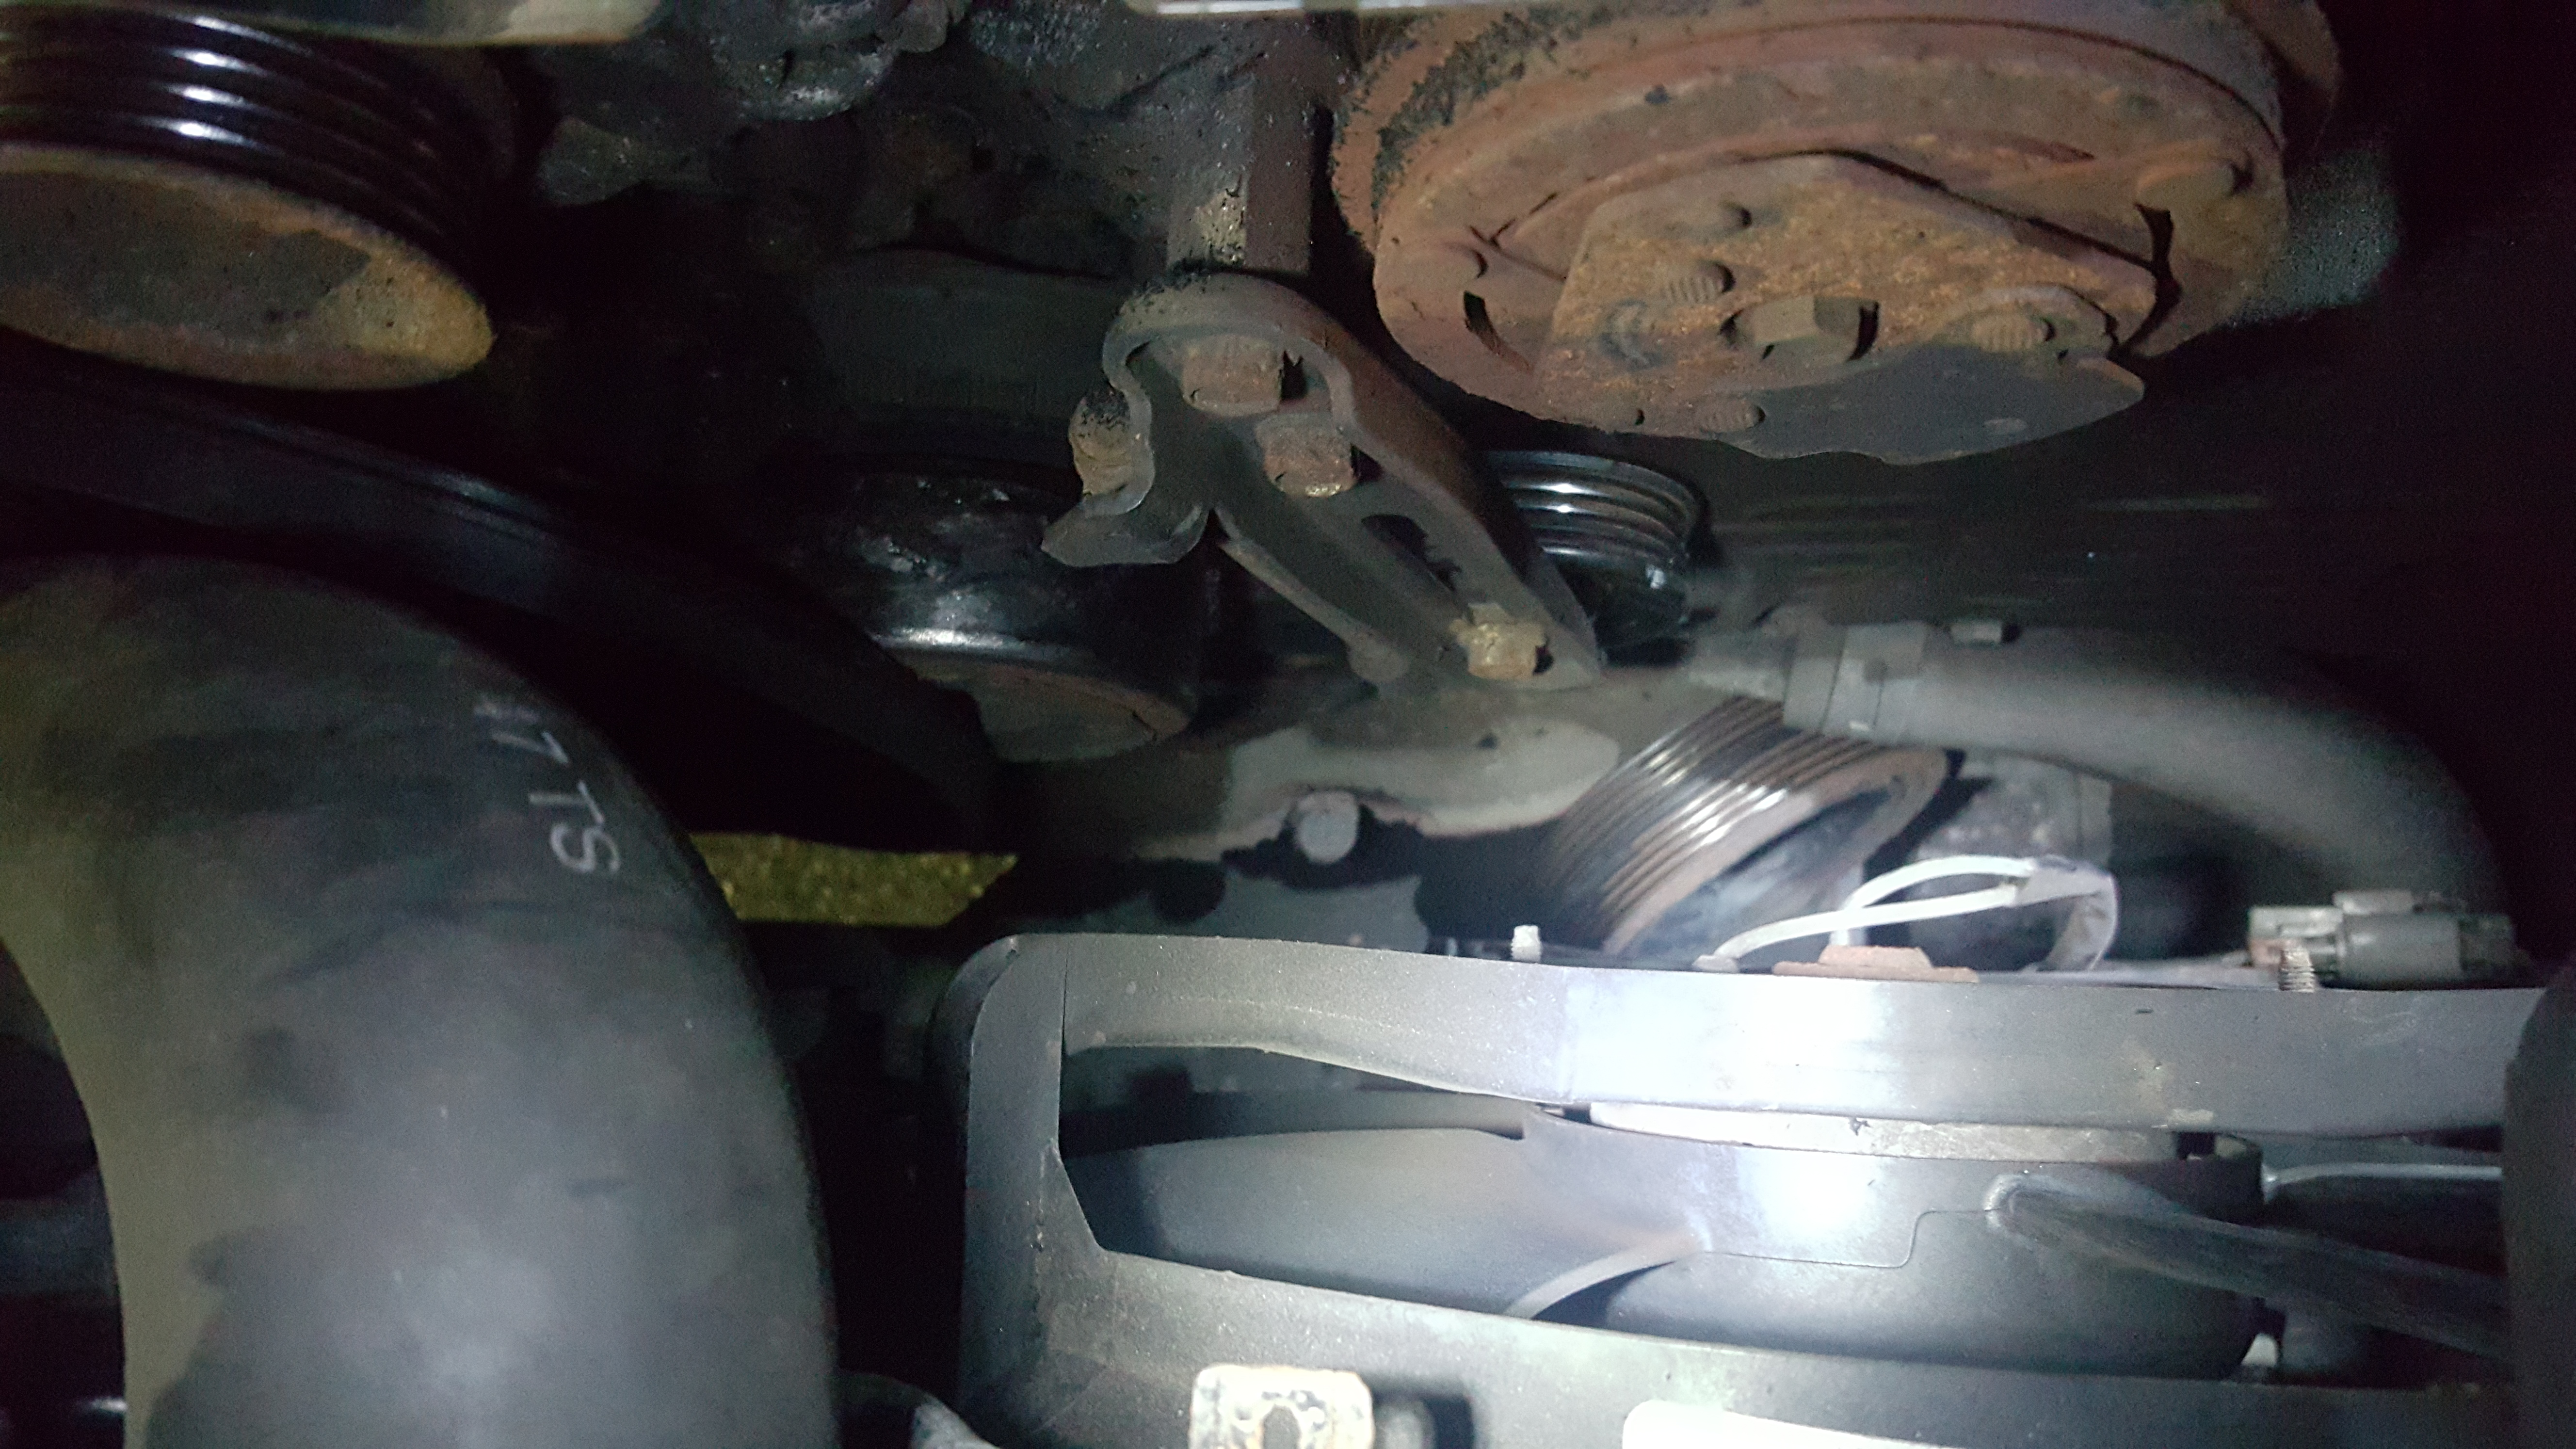 Okay so i think my crankshaft pulley broke off and it ate for Mercedes benz serpentine belt replacement cost